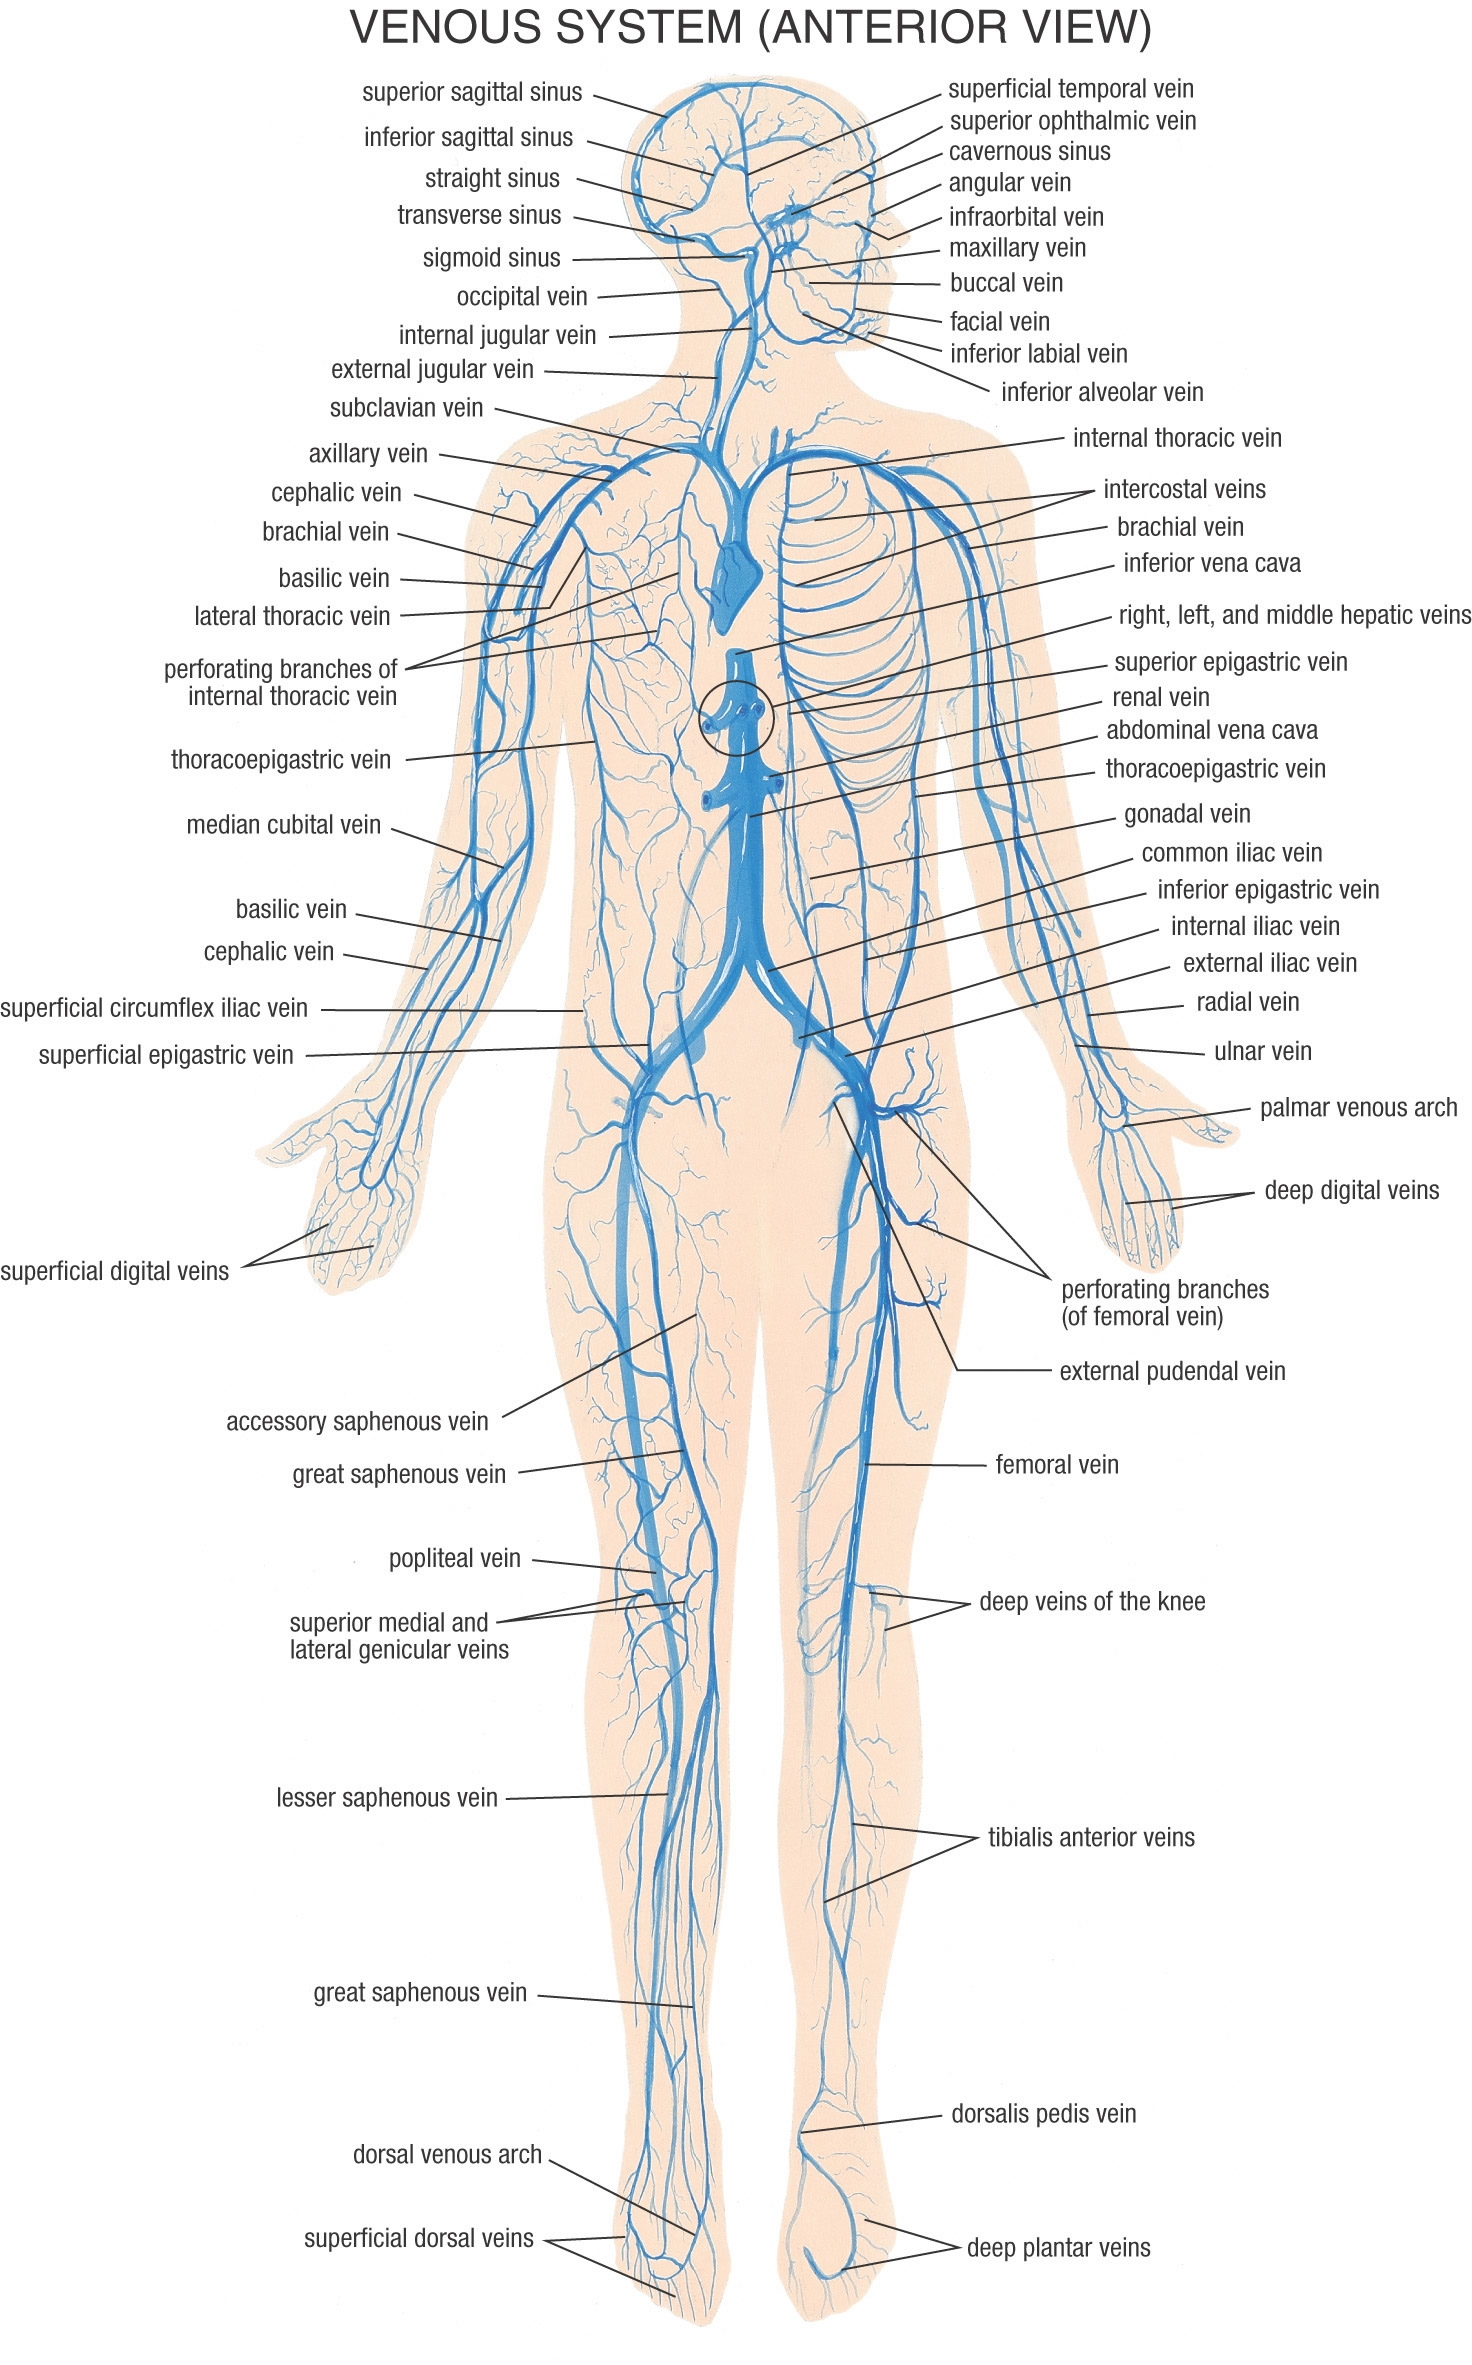 Humanbrain moreover 1595 in addition Details moreover Lab exercise 14 vessels in addition Arteries Of The Body Diagram. on artery of the brain labeling exercise